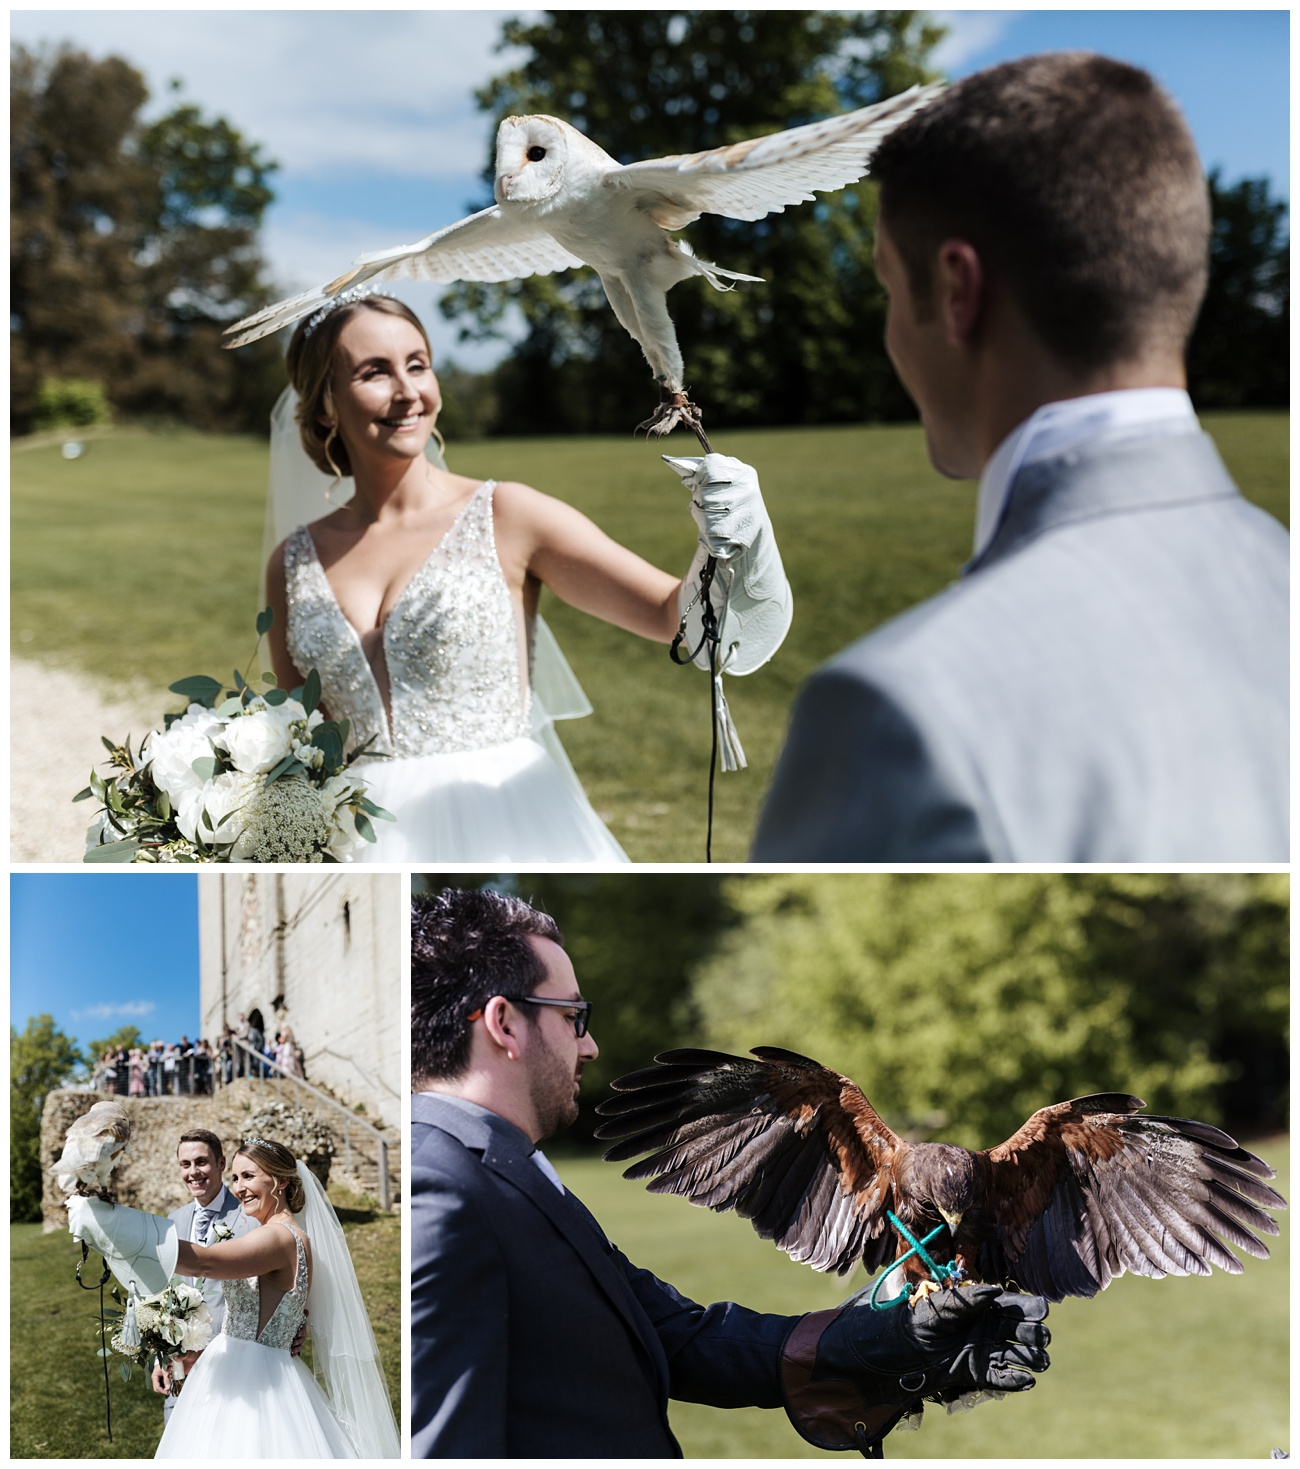 The bride and groom enjoying holding birds of prey in the grounds of the castle